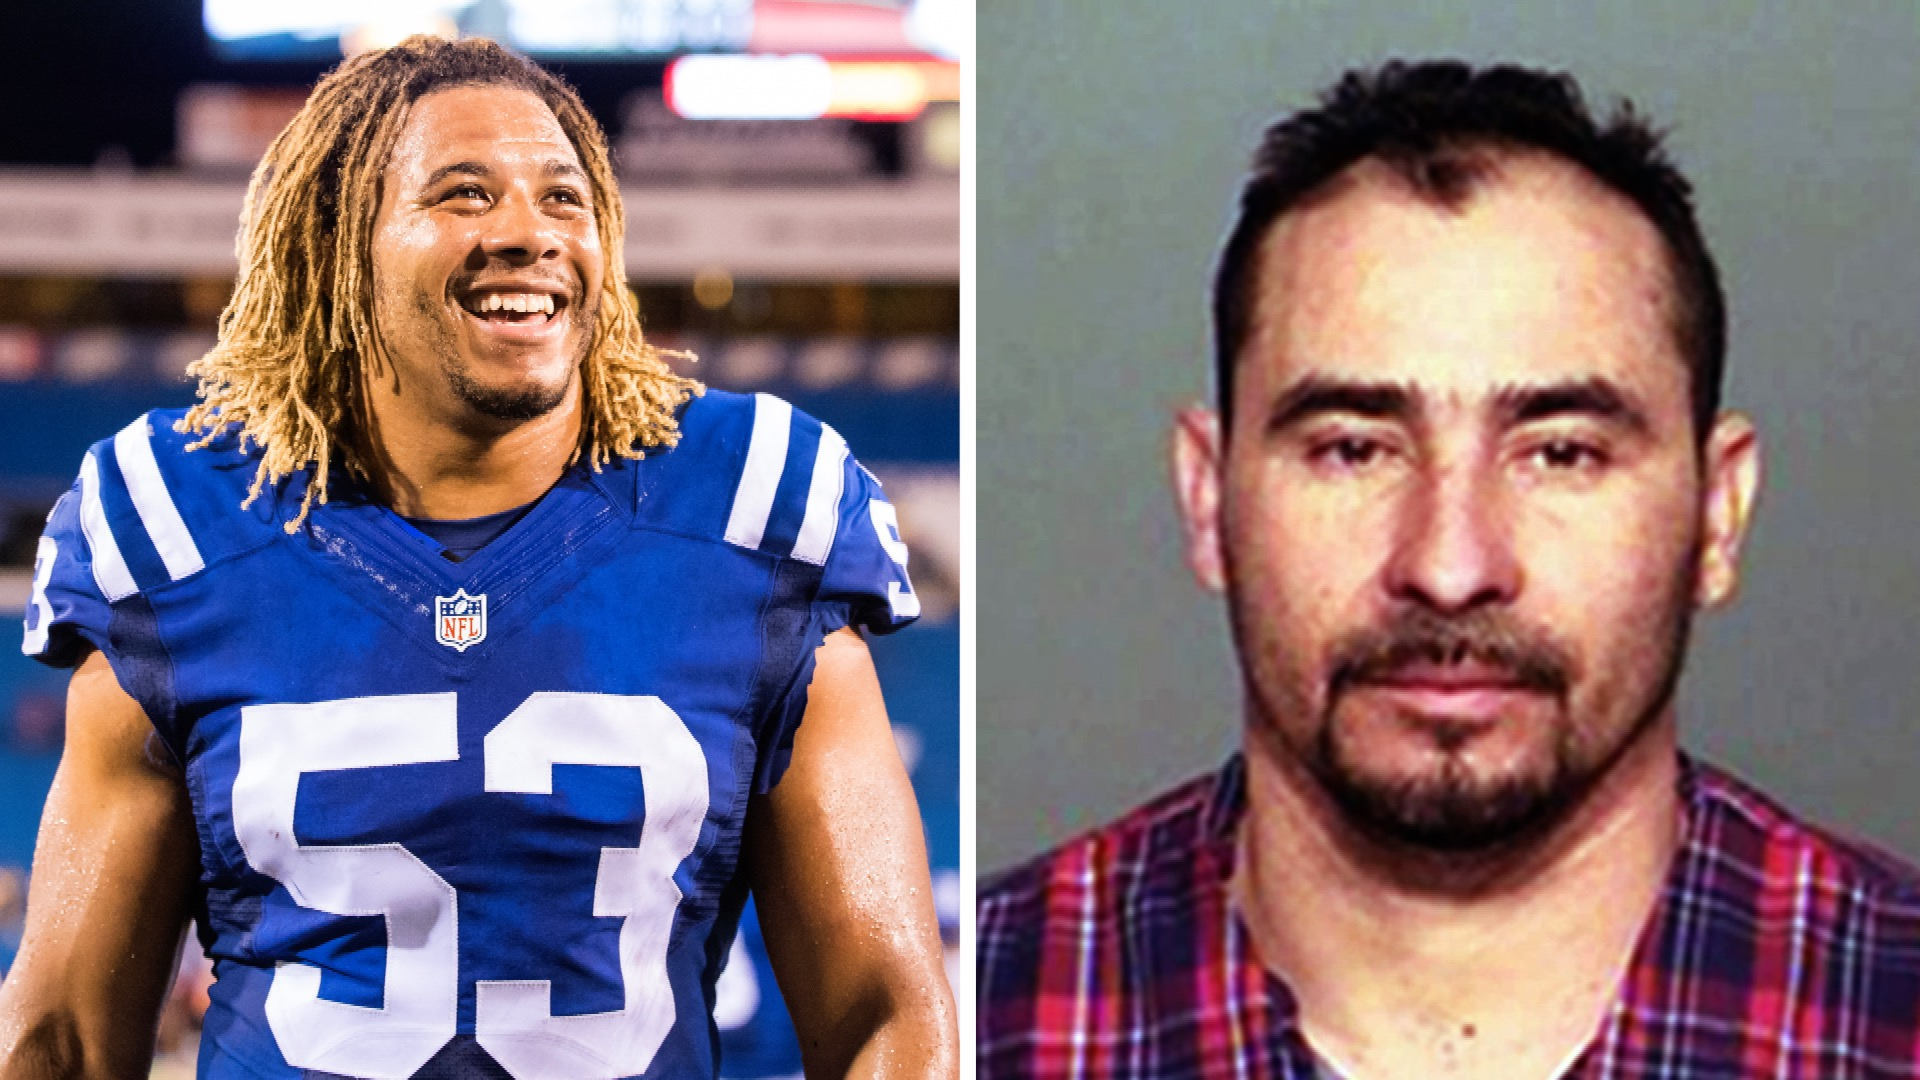 Man Who Killed NFL Player Edwin Jackson Gets Additional Prison Sentence for Illegally Reentering United States